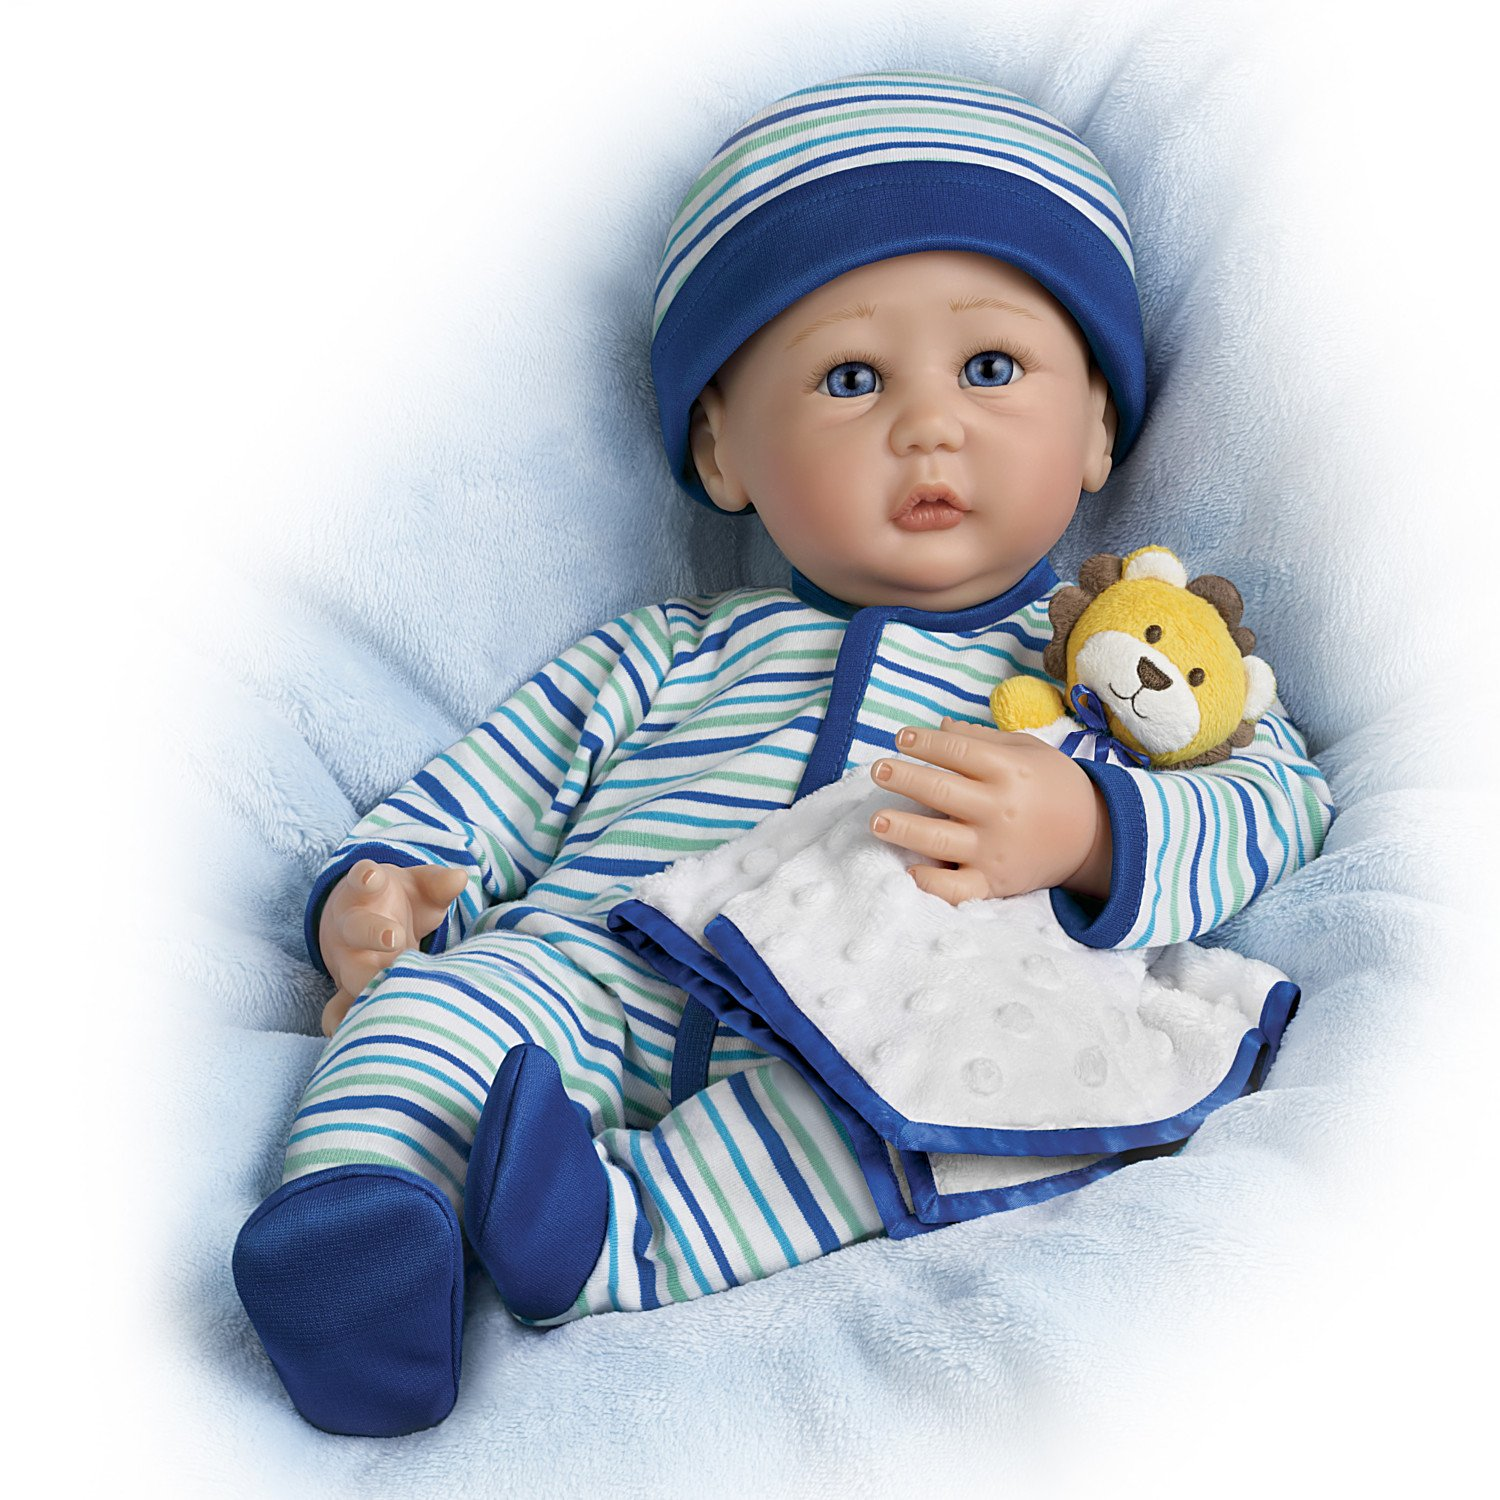 Sherry Miller Weighted Poseable LifelikeベビーBoy Doll and Lion Lovie Blanket by The ashton-drakeギャラリー   B07BC697VX